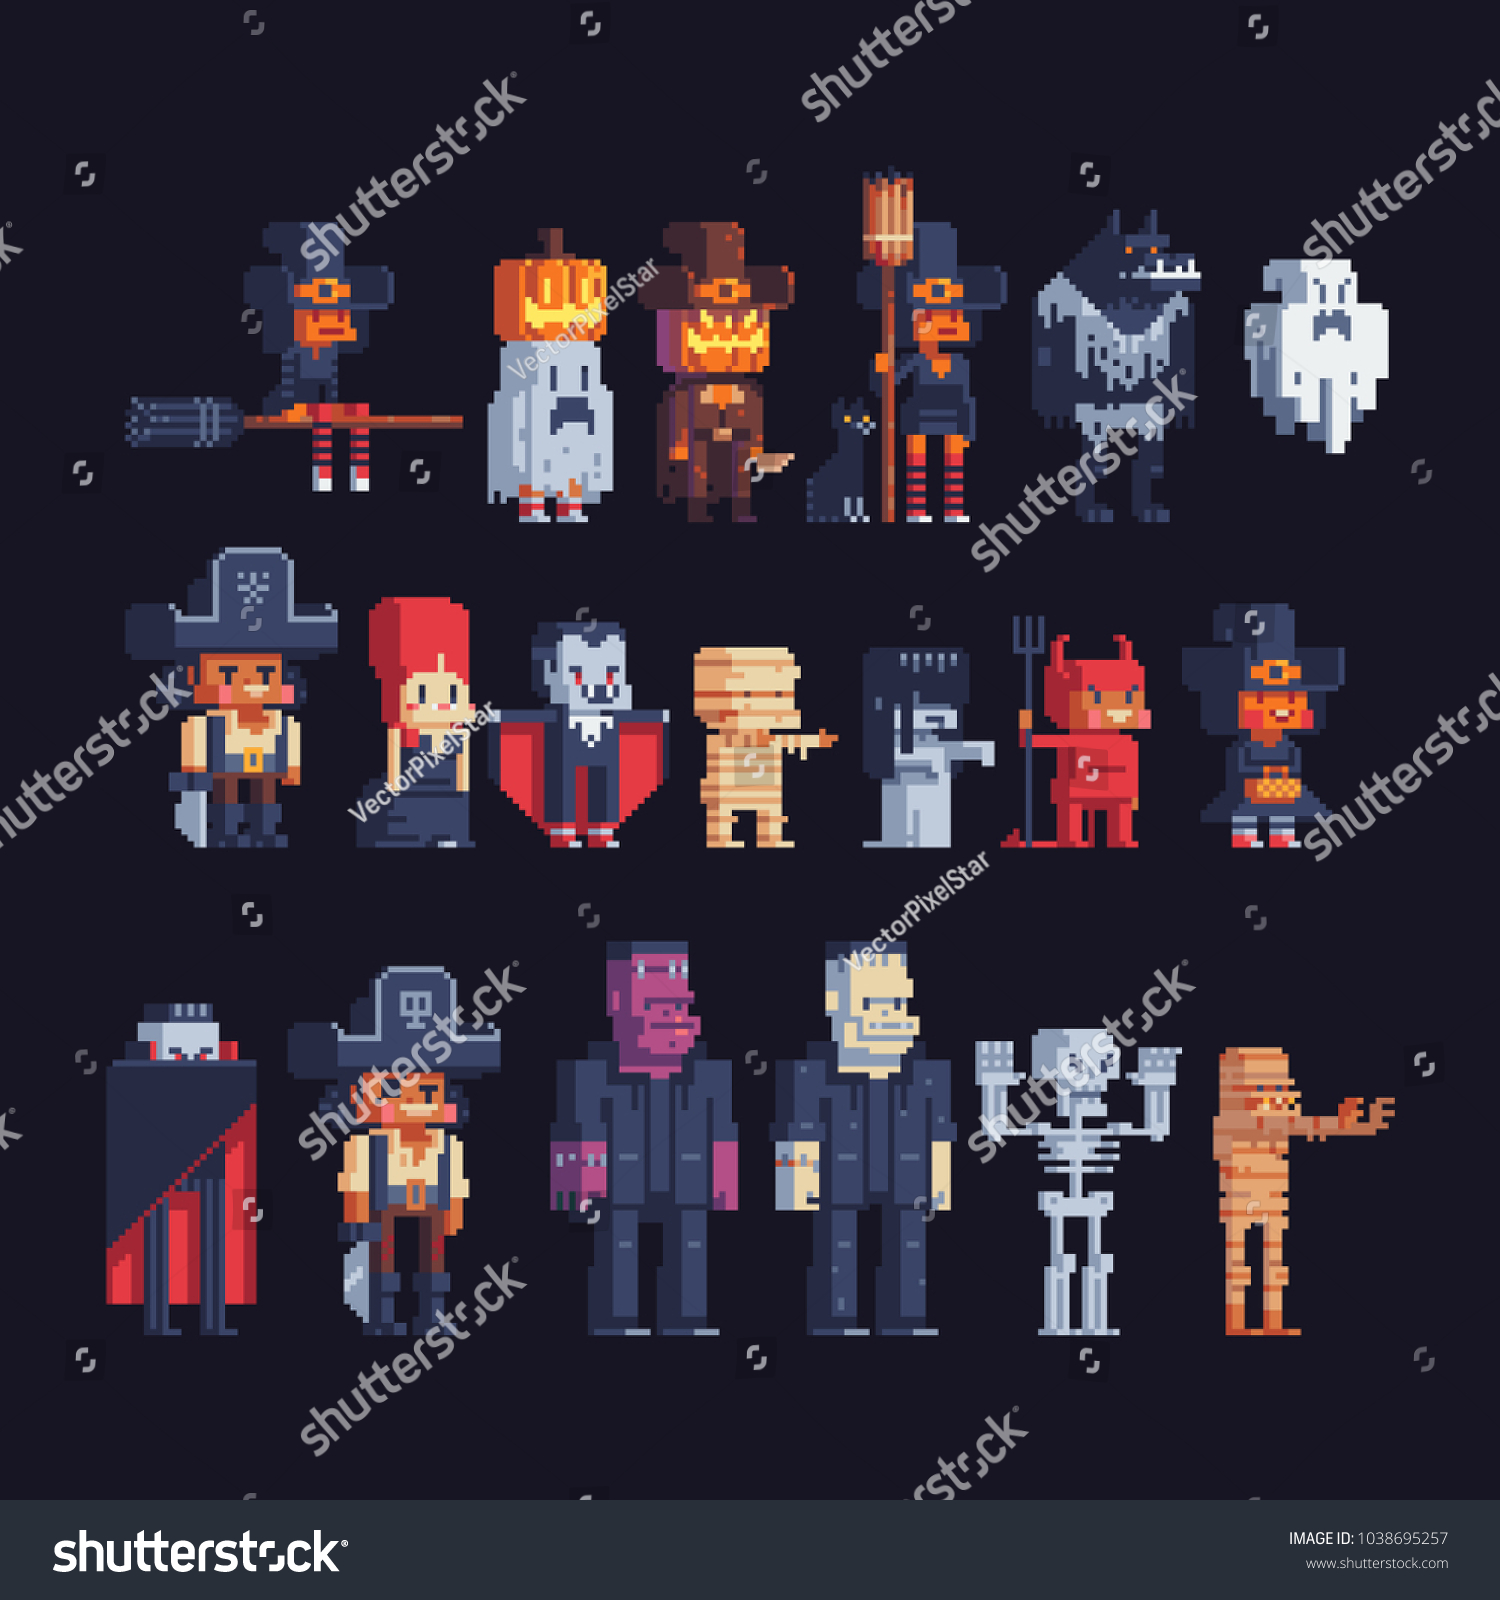 Happy Halloween Costume Party Pixel Art Stock Vector 1038695257